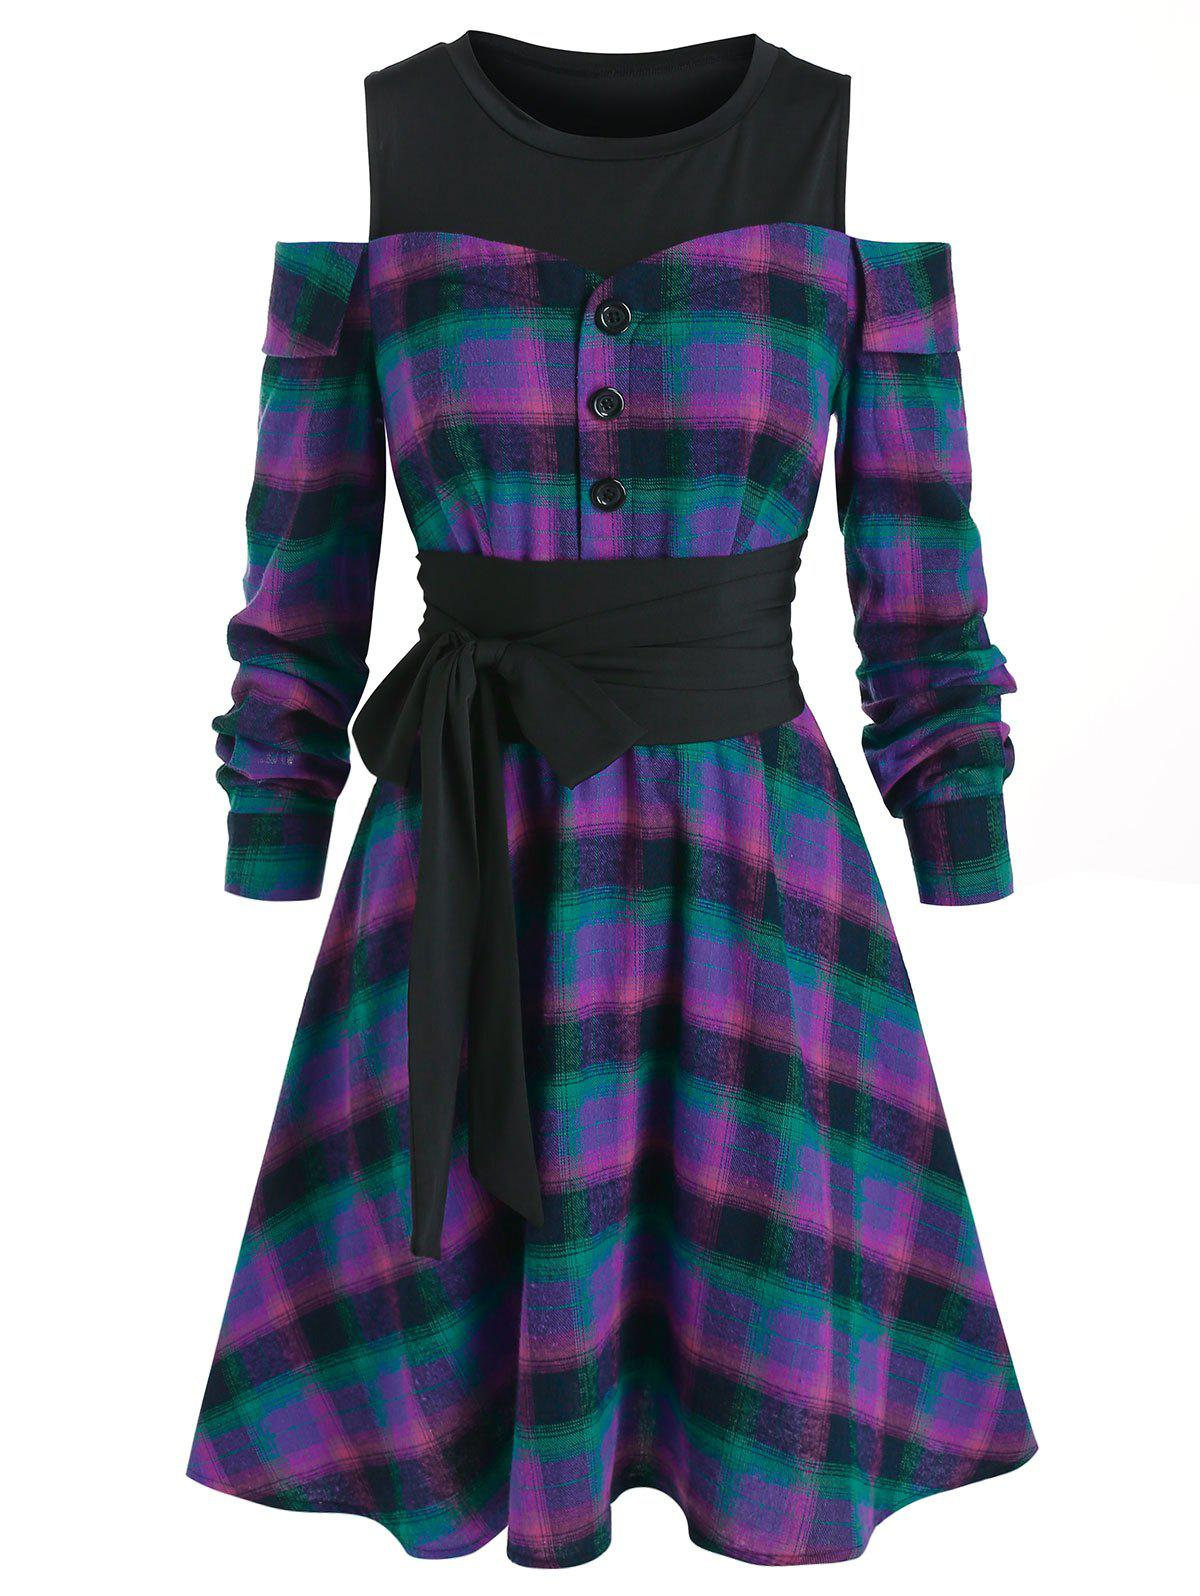 Plaid Open Shoulder Knee Length Dress - multicolor XL